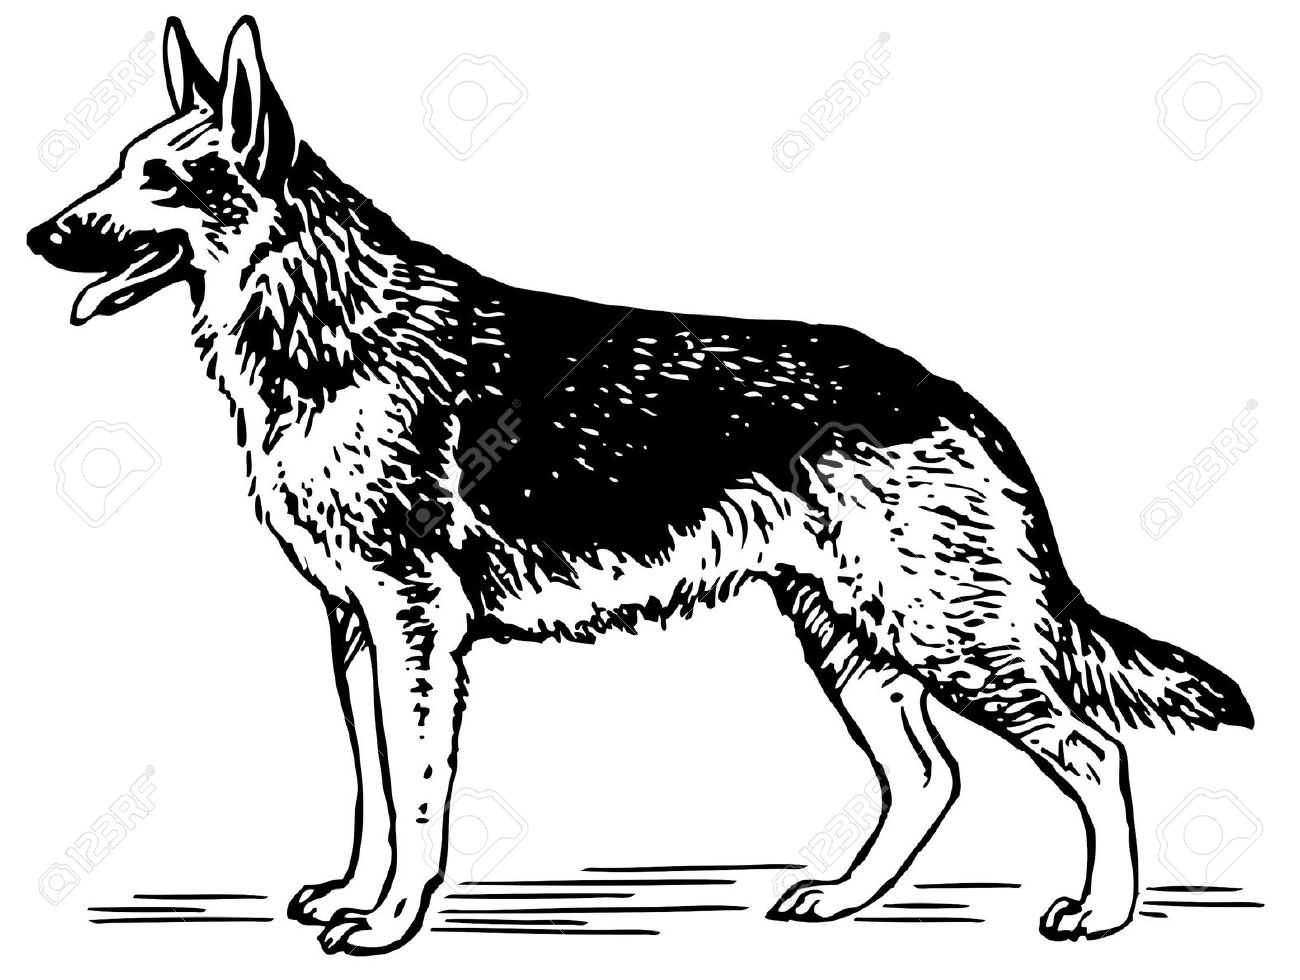 German Shepherd Dog Royalty Free Cliparts, Vectors, And Stock.